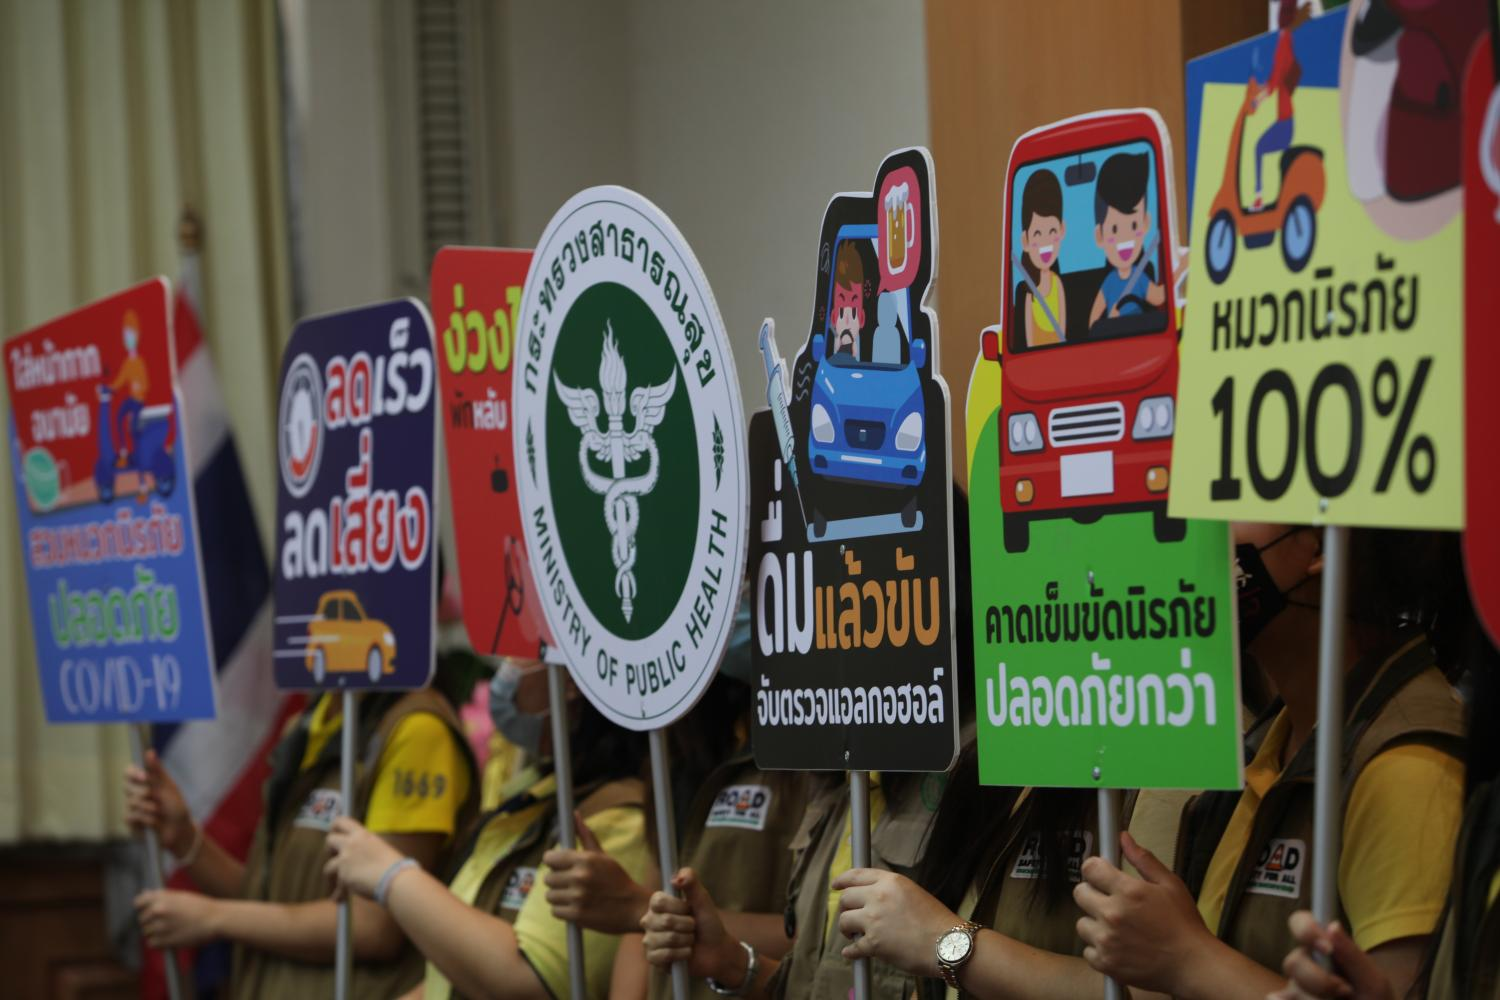 Activists hold up placards encouraging motorists to drive safely during the forthcoming New Year holiday, in a road safety campaign launched by the Public Health Ministry on Monday in Bangkok. Apichart Jinakul